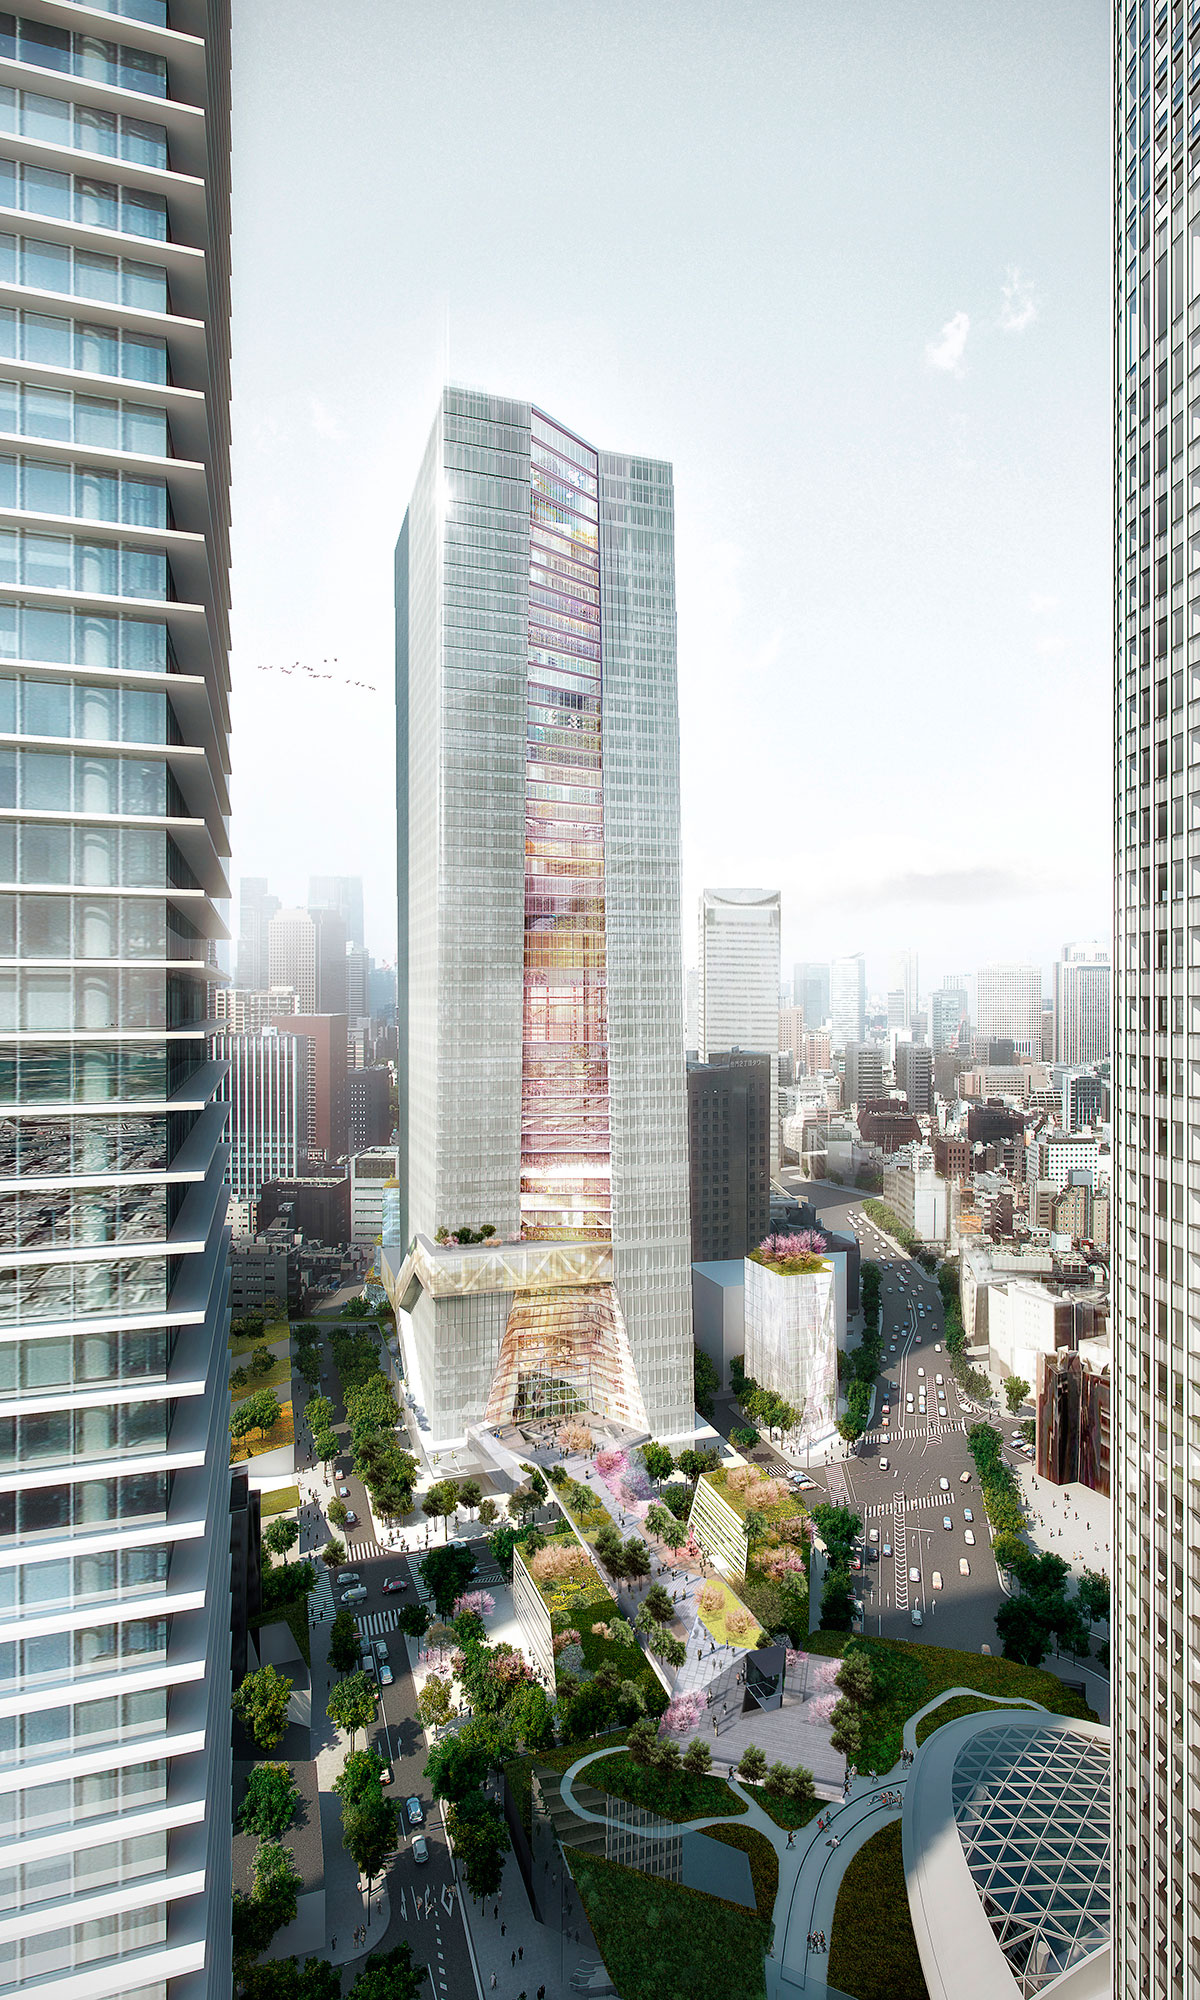 OMA introduced its first residential high-rise for New York 98